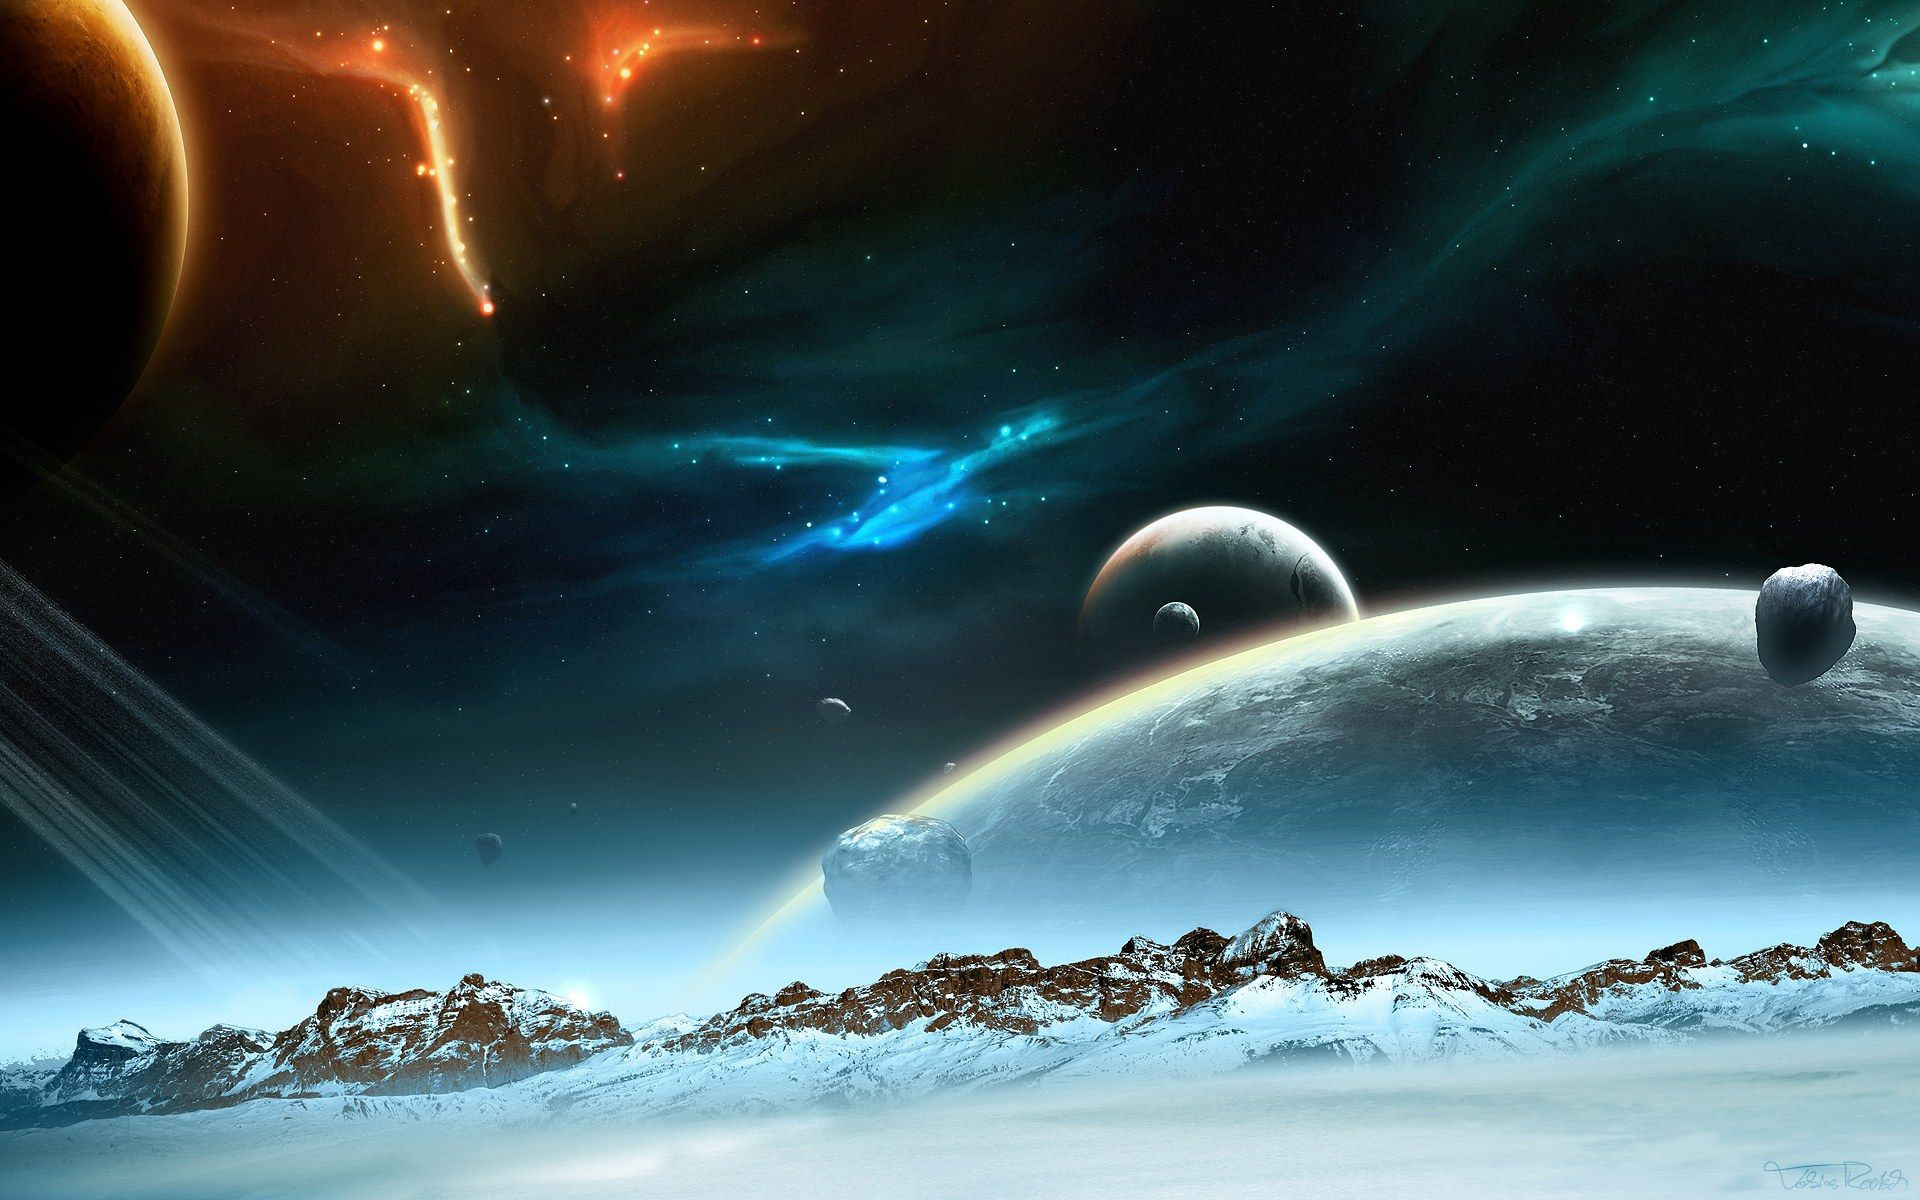 Hd wallpaper universe - Find This Pin And More On Extra Solar Planet Art Search Results For Hd Wallpaper